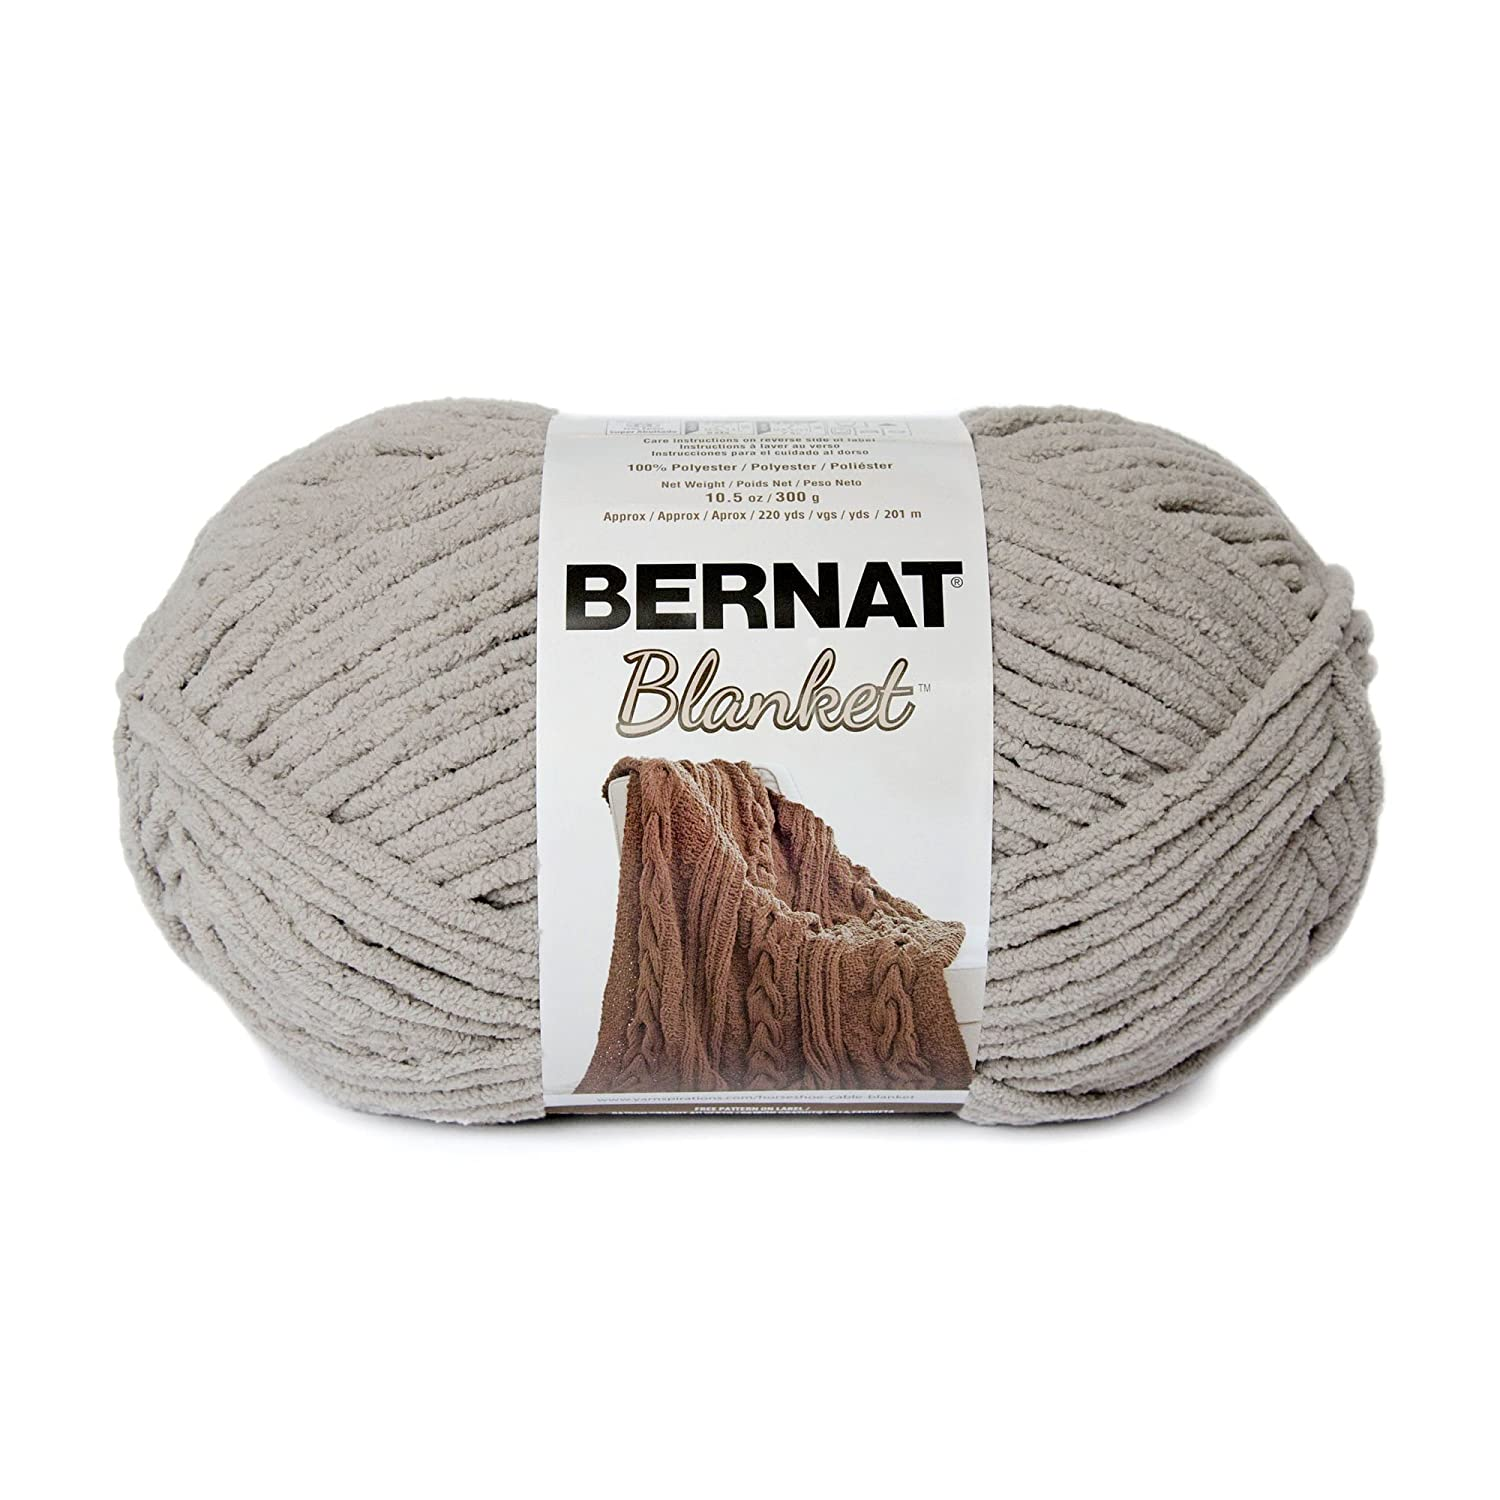 Bernat Blanket Big Ball Yarn (10203) Mallard Wood, Mallard Wood 1481 West Second Street 16111010203